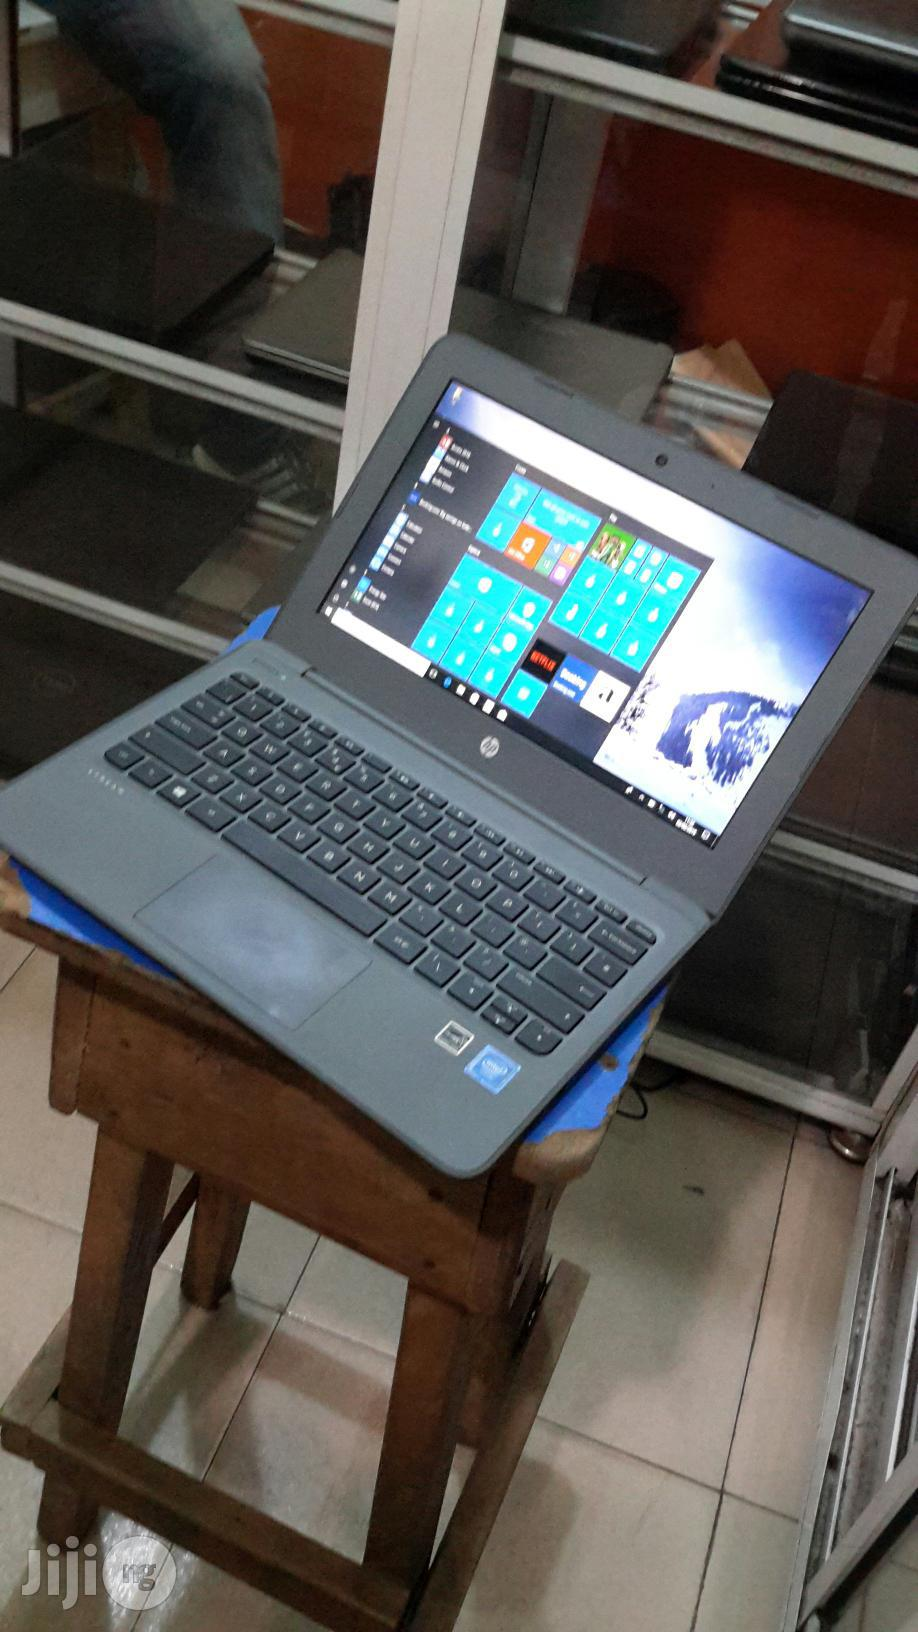 Laptop HP Stream Laptop 4GB Intel Celeron SSD 60GB | Laptops & Computers for sale in Ikeja, Lagos State, Nigeria